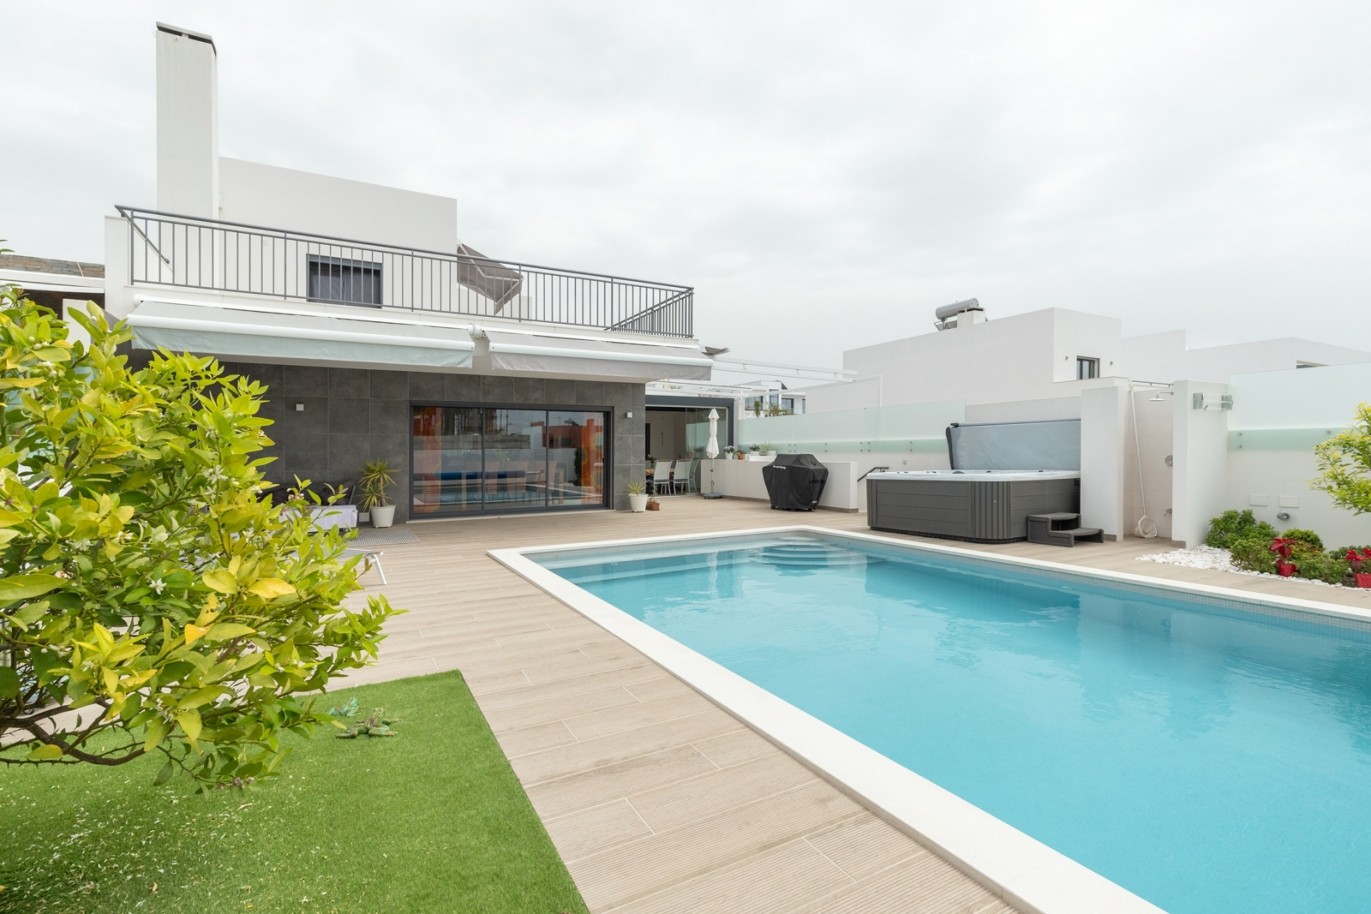 modern-3-bedroom-villa-with-swimming-pool-jacuzzi-quarteira-algarve